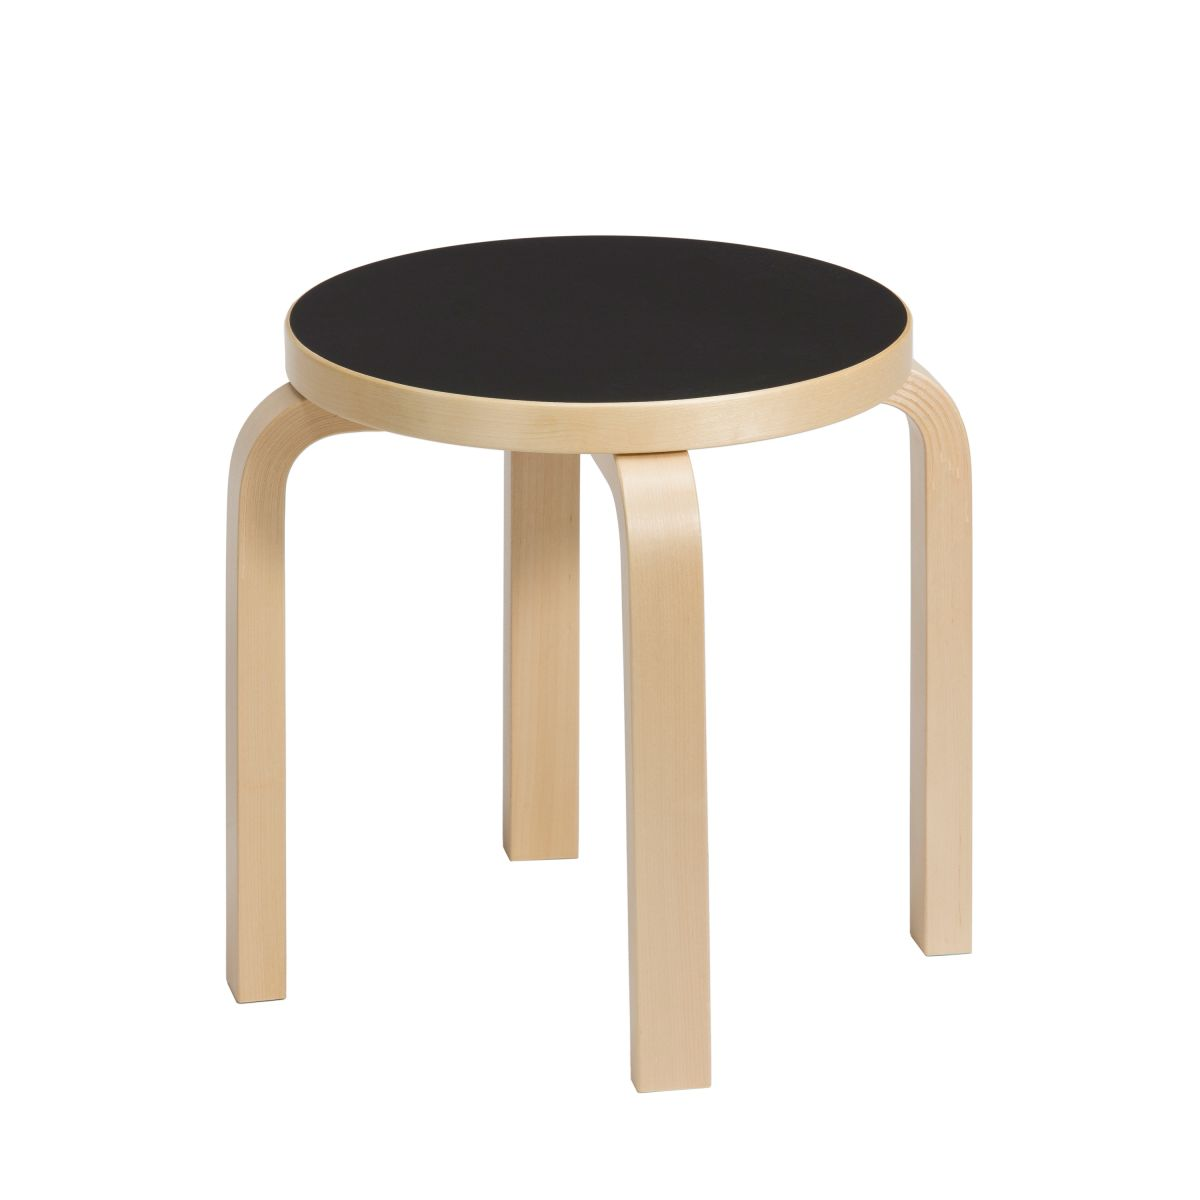 Children's Stool NE60 black linoleum